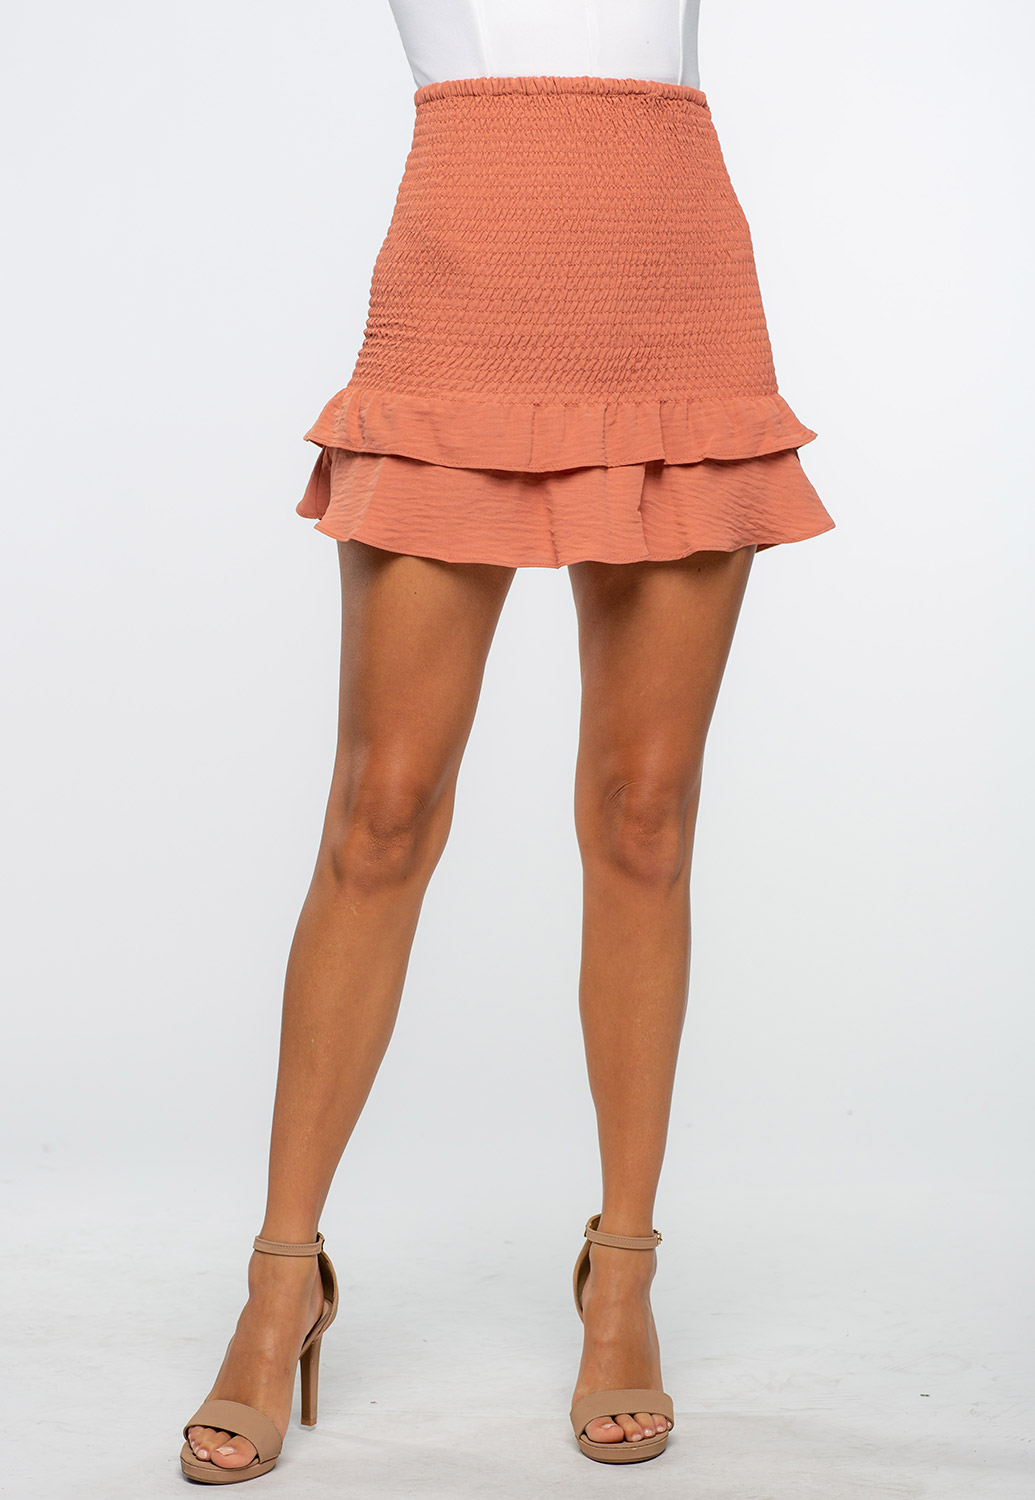 Smocked Ruffle Summer Skirt